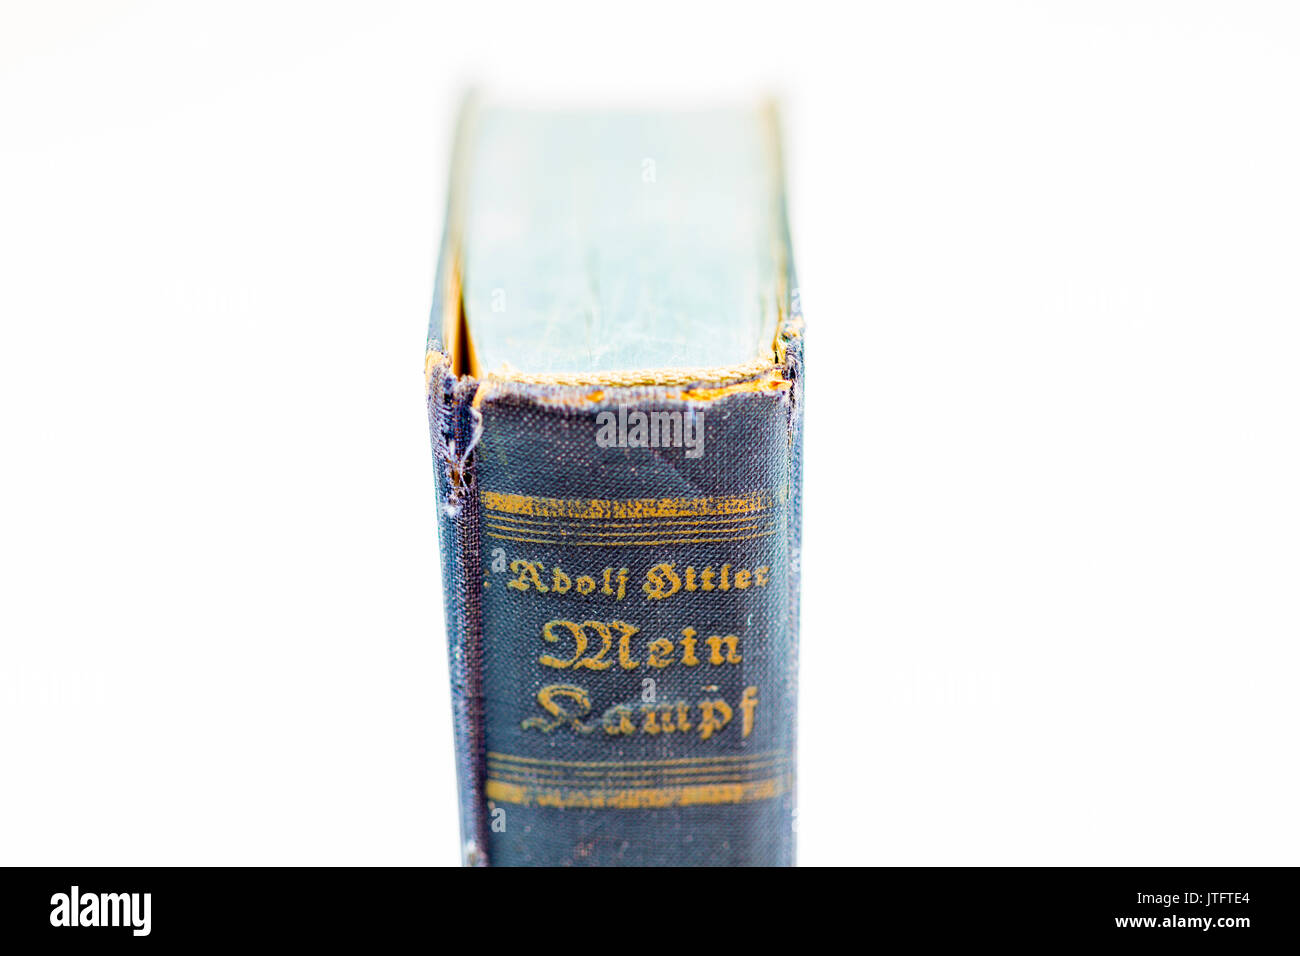 1943 german edition of Mein Kampf by Adolf Hitler - Stock Image